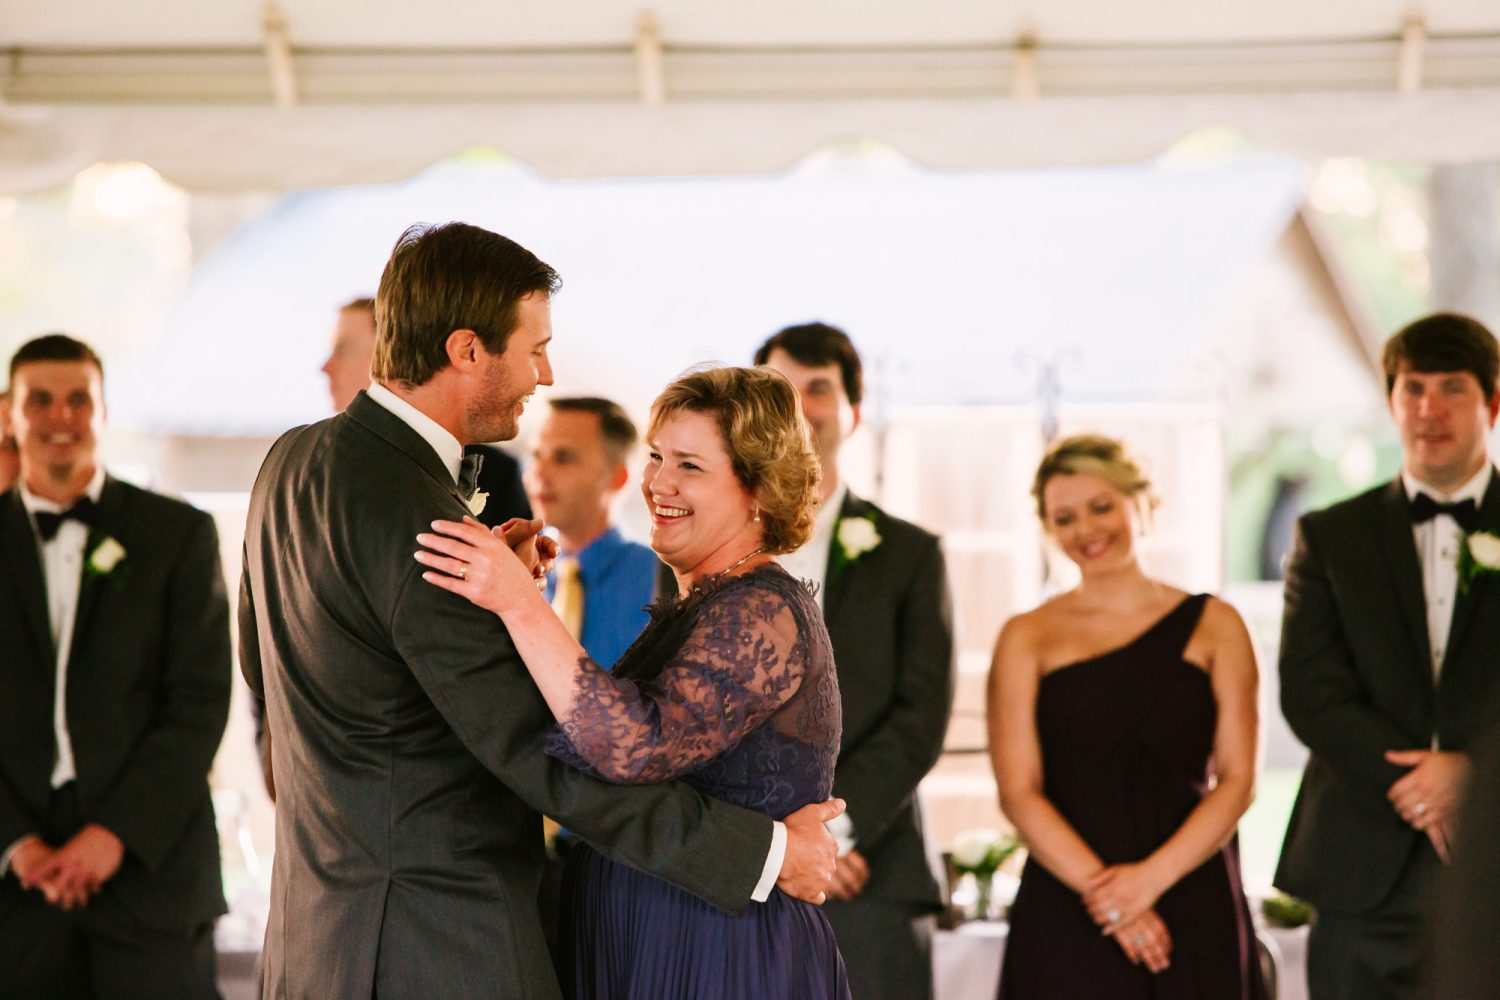 Waynesville, NC Wedding Photography | Mother and Son Dancing and Smiling